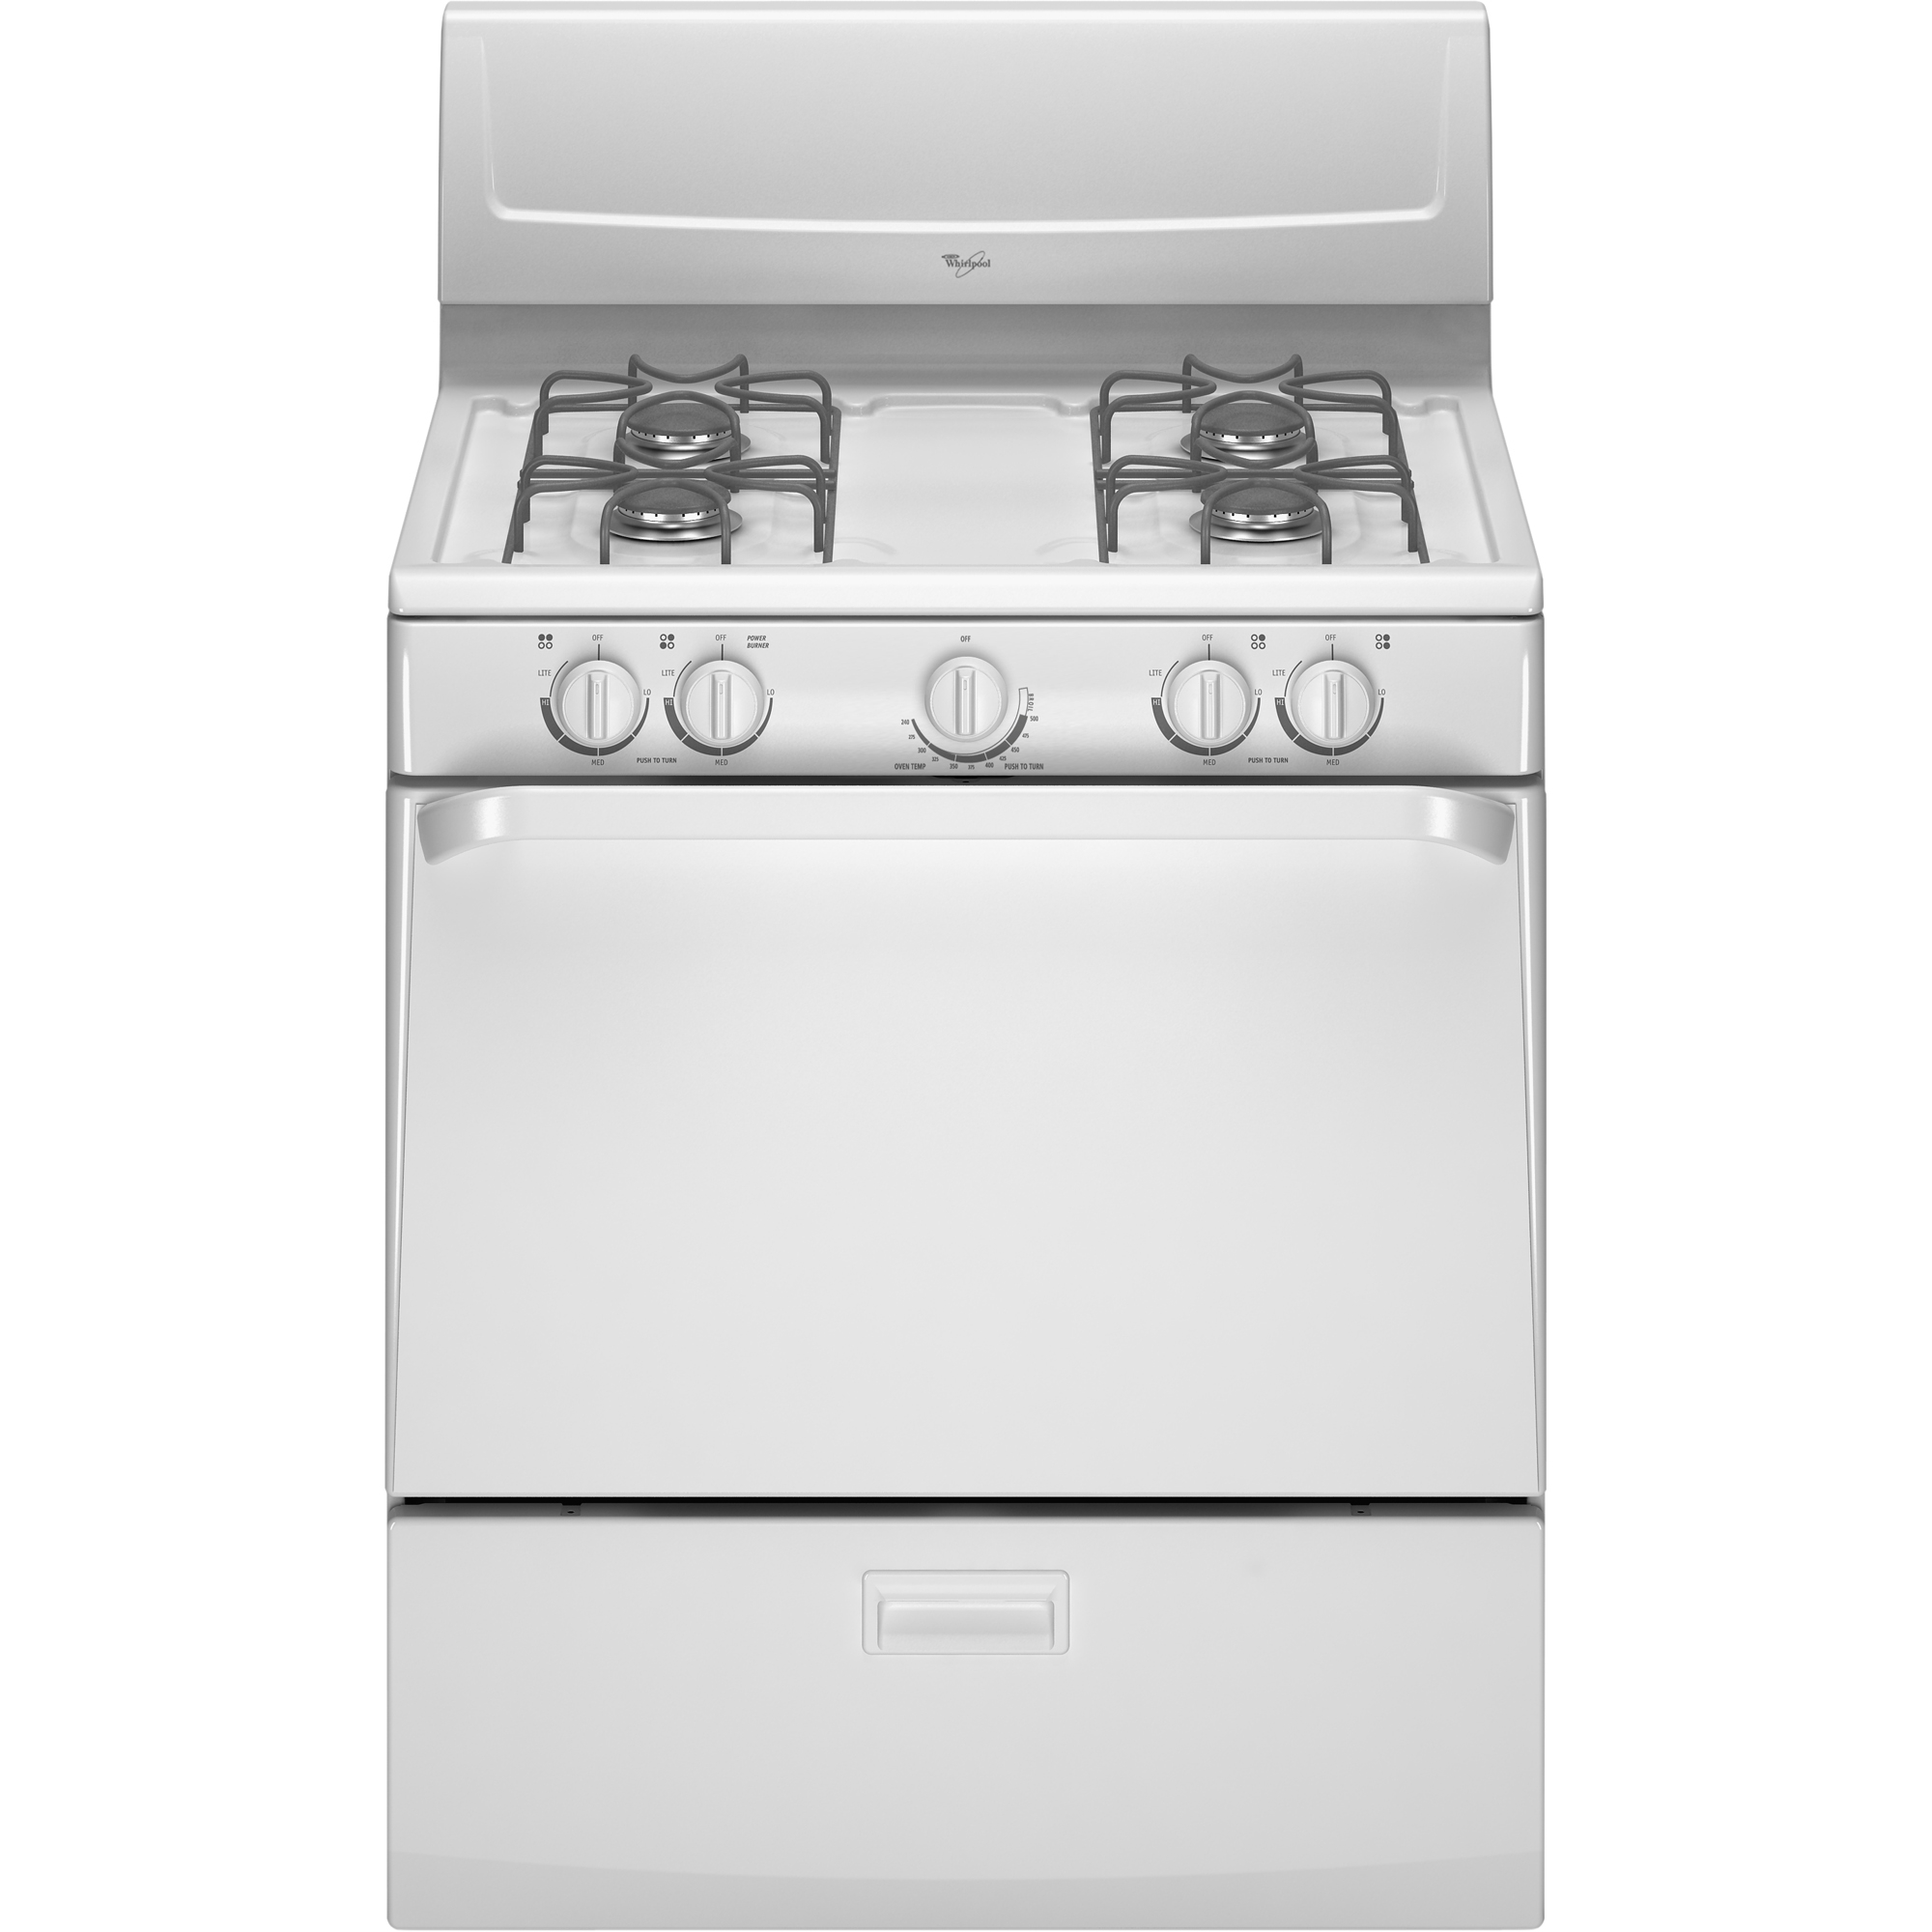 WHIRLPOOL� 4.4 CU. FT. FREE STANDING GAS RANGE WITH ELECTRIC IGNITION, WHITE